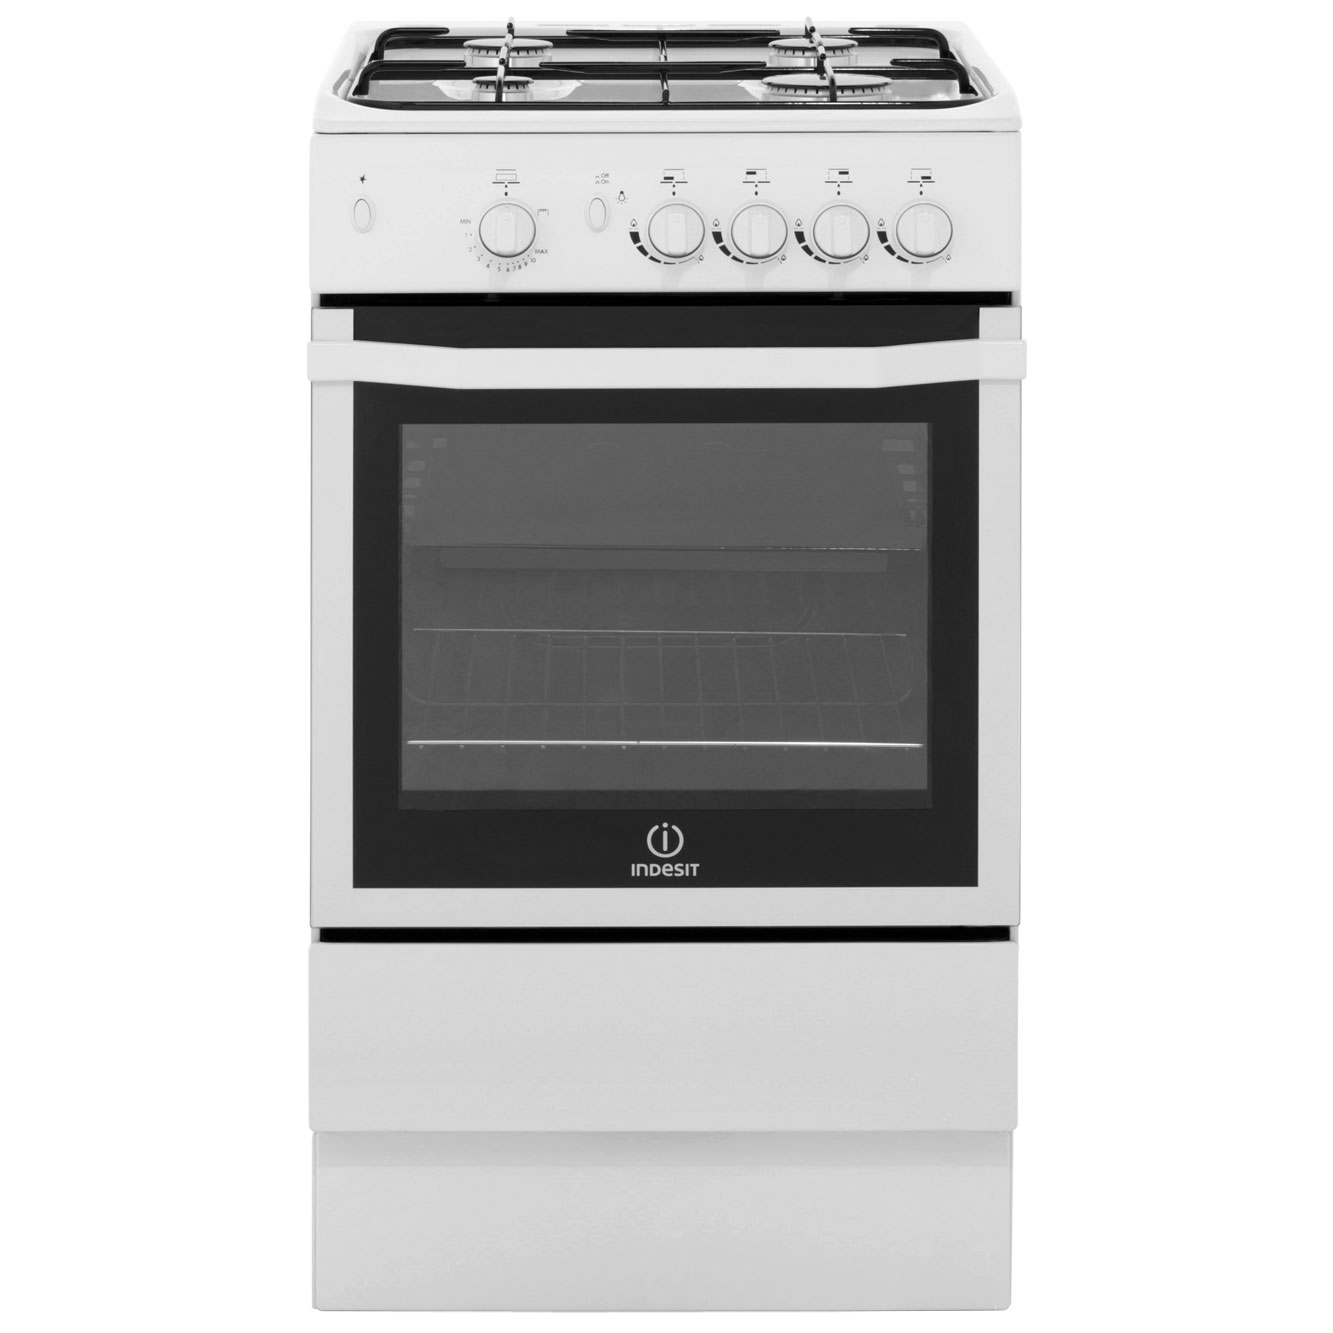 indesit i5ggw free standing gas cooker with gas hob 50cm. Black Bedroom Furniture Sets. Home Design Ideas